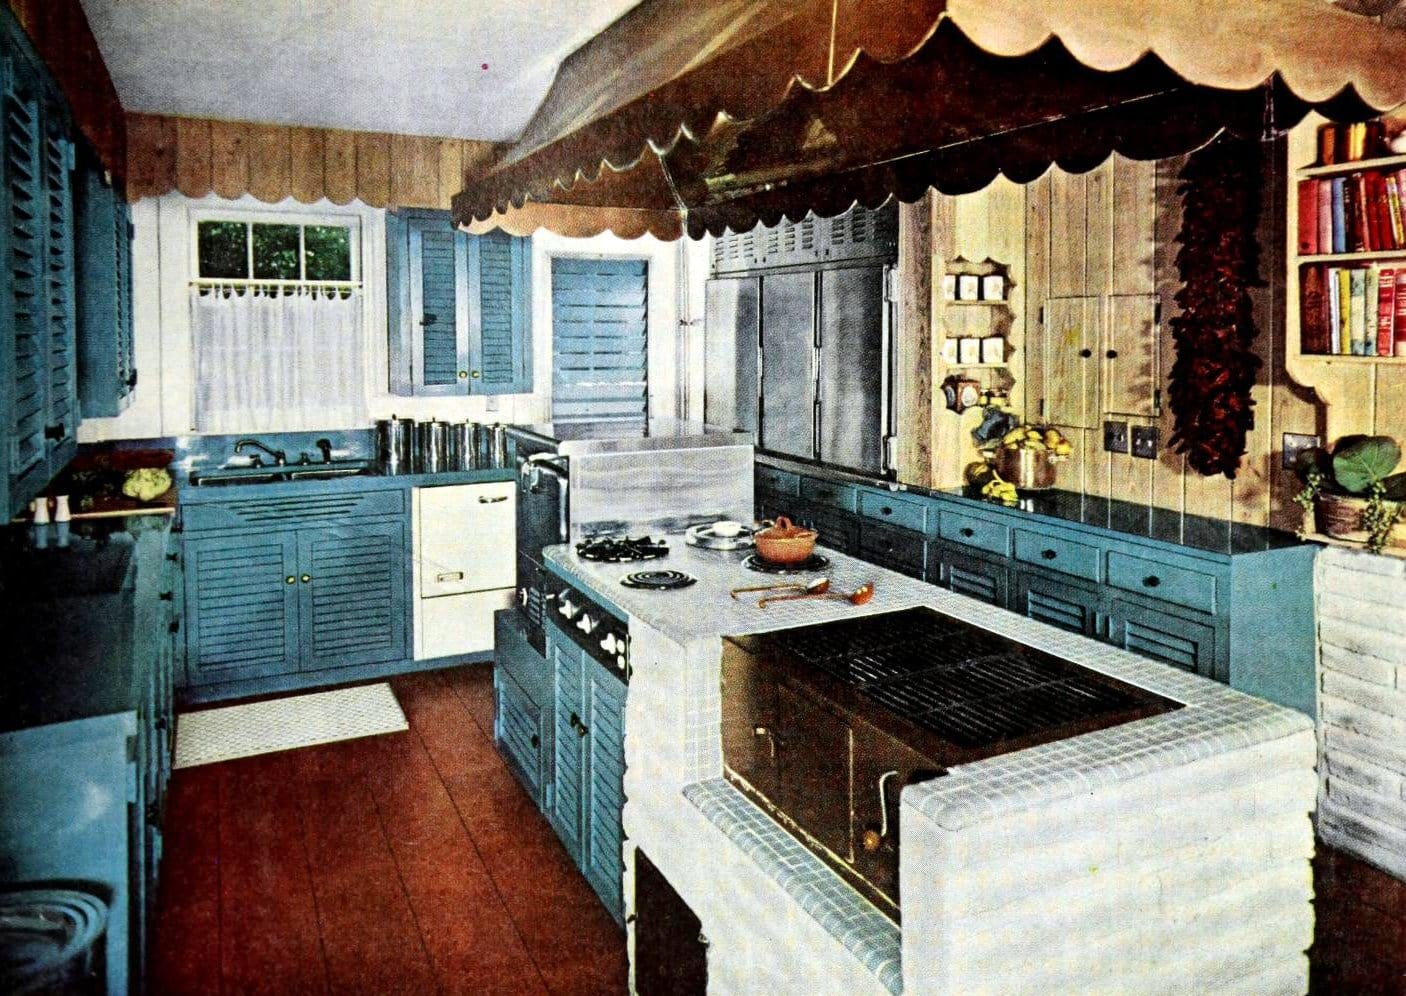 Blue and white vintage kitchen with cooking island (1959)